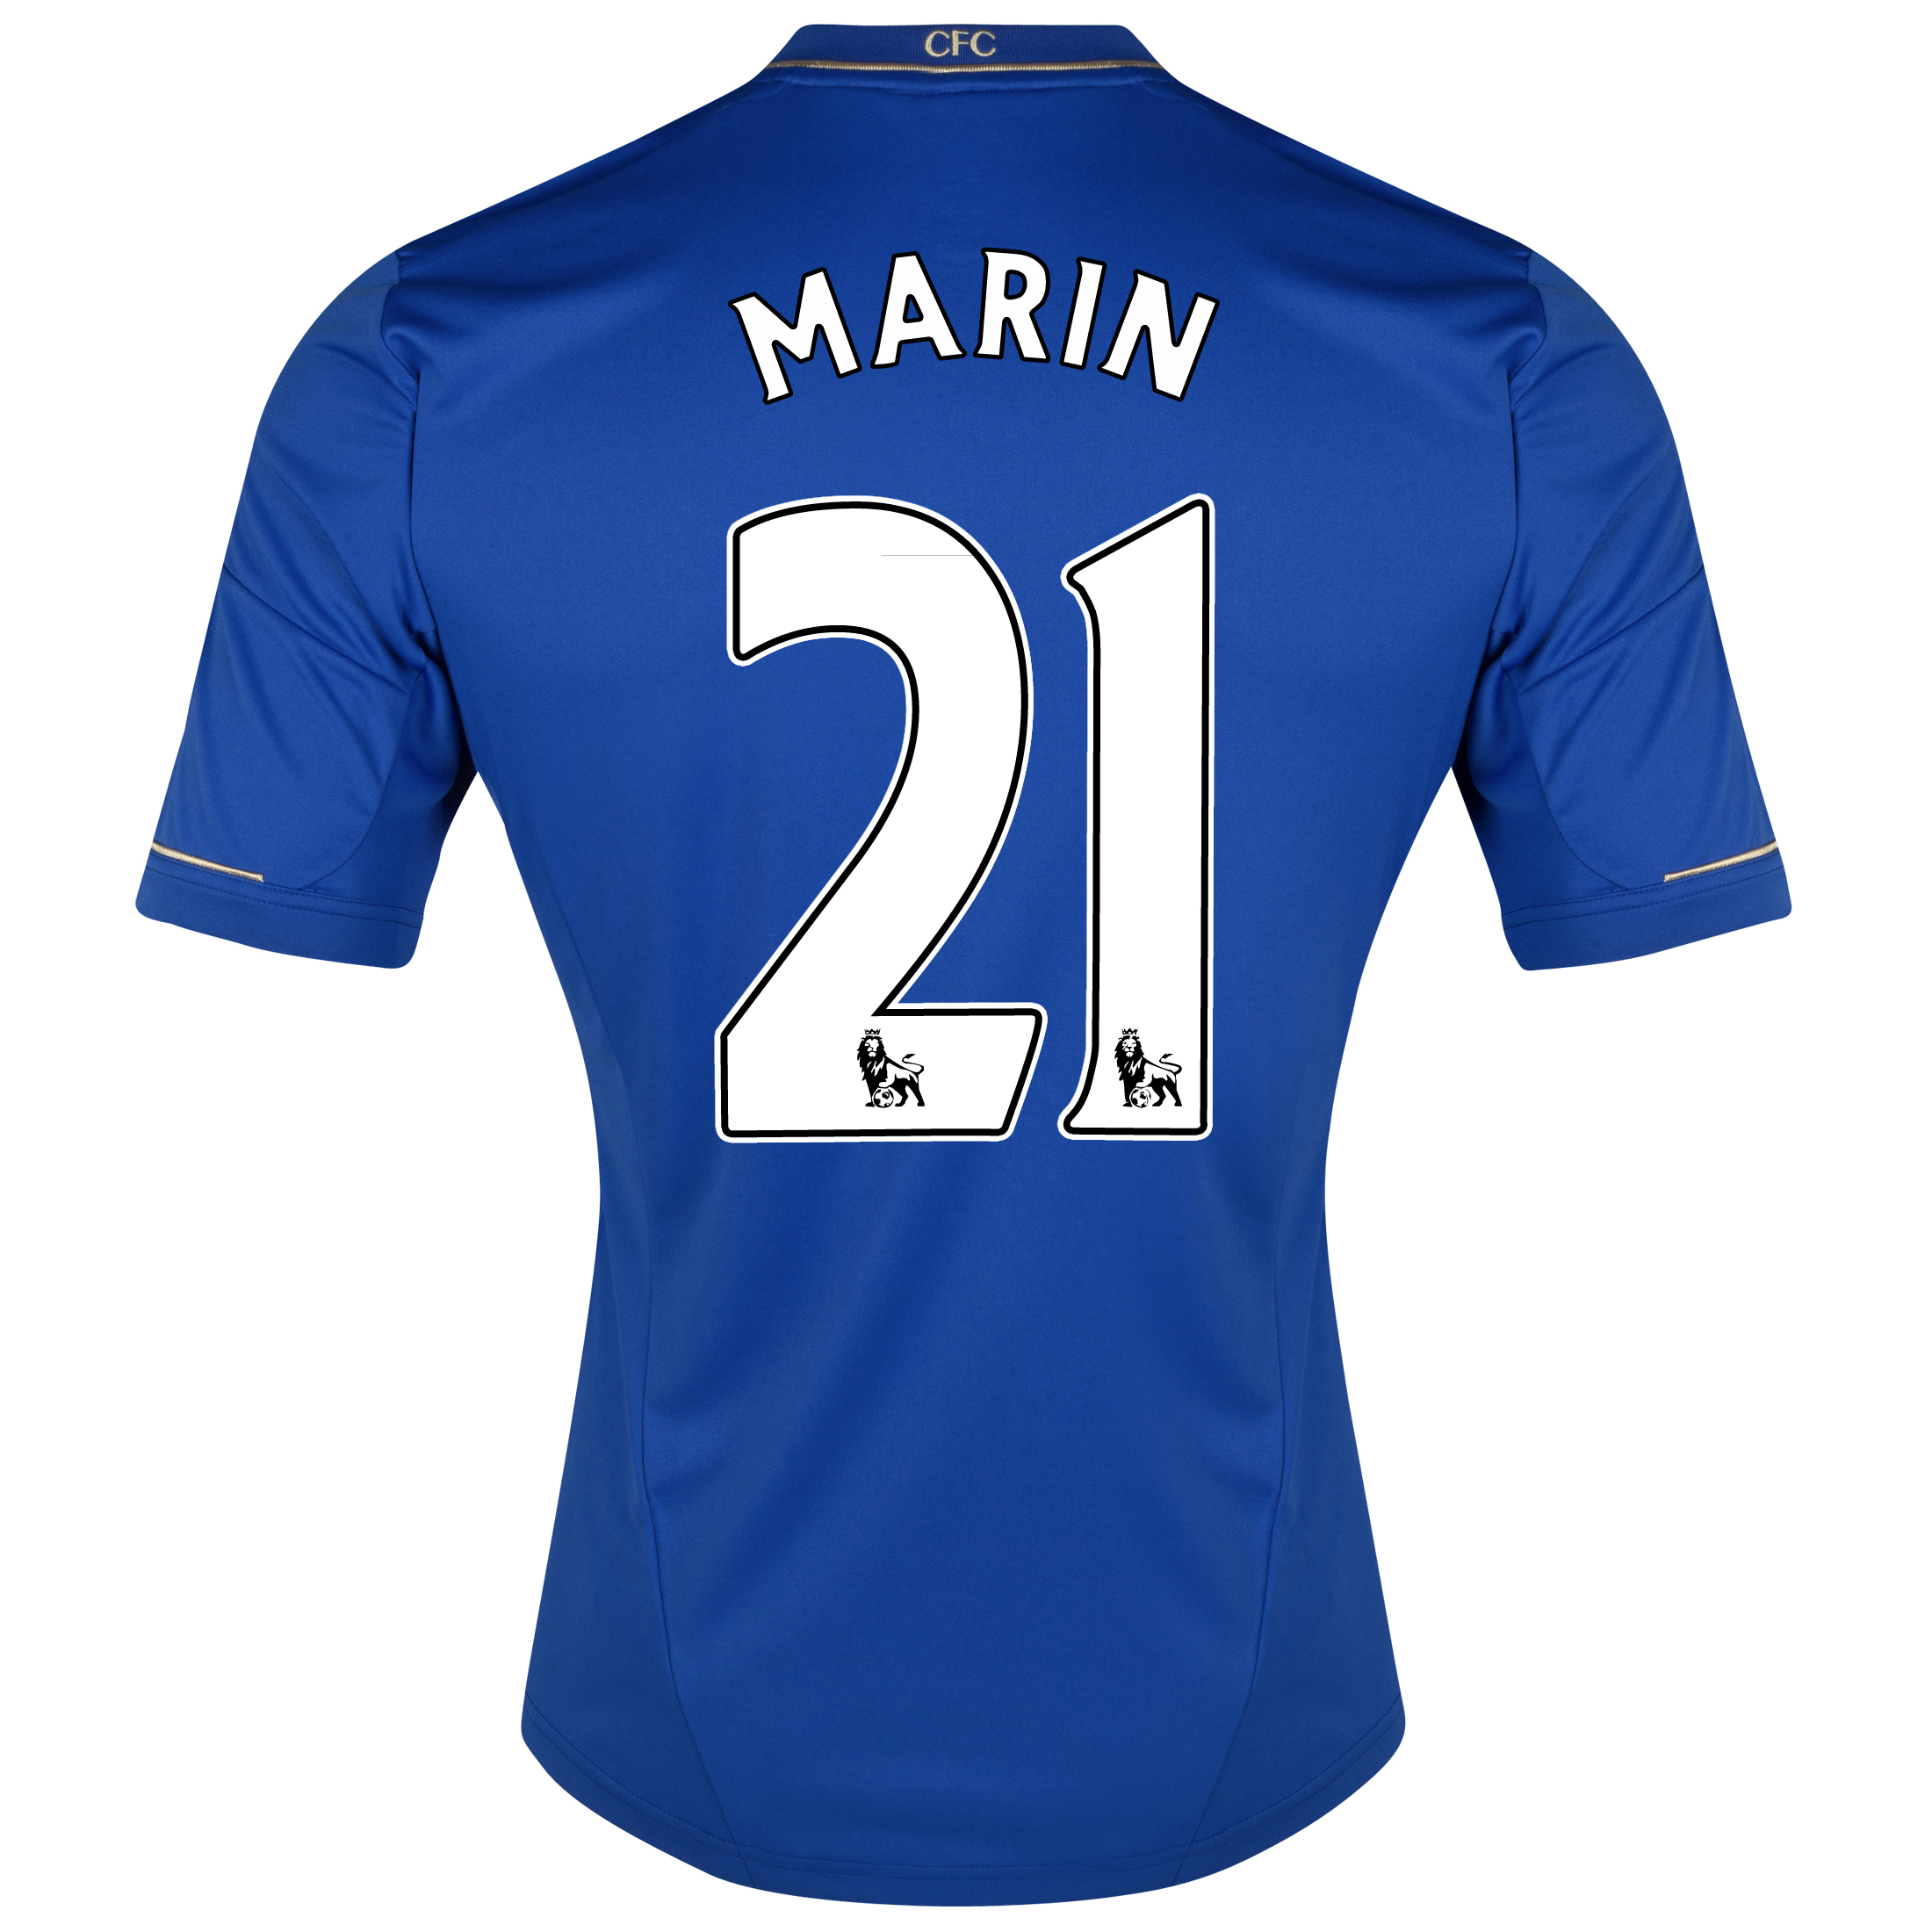 Chelsea Home Shirt 2012/13 - Outsize with Marin 21 printing